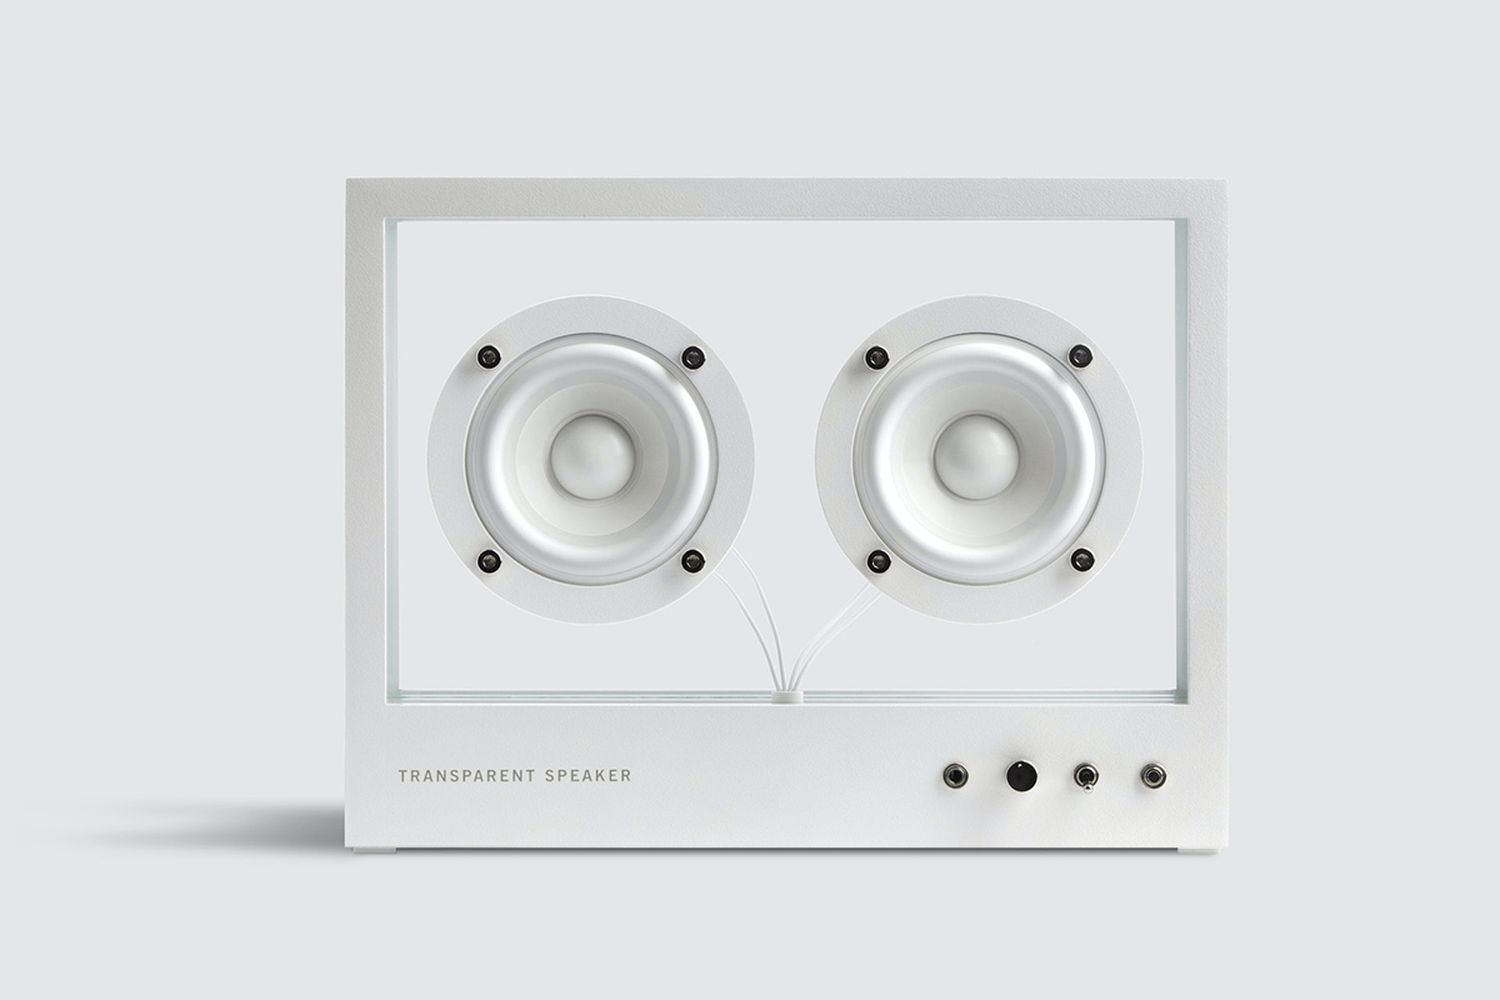 Small Transparent Speaker